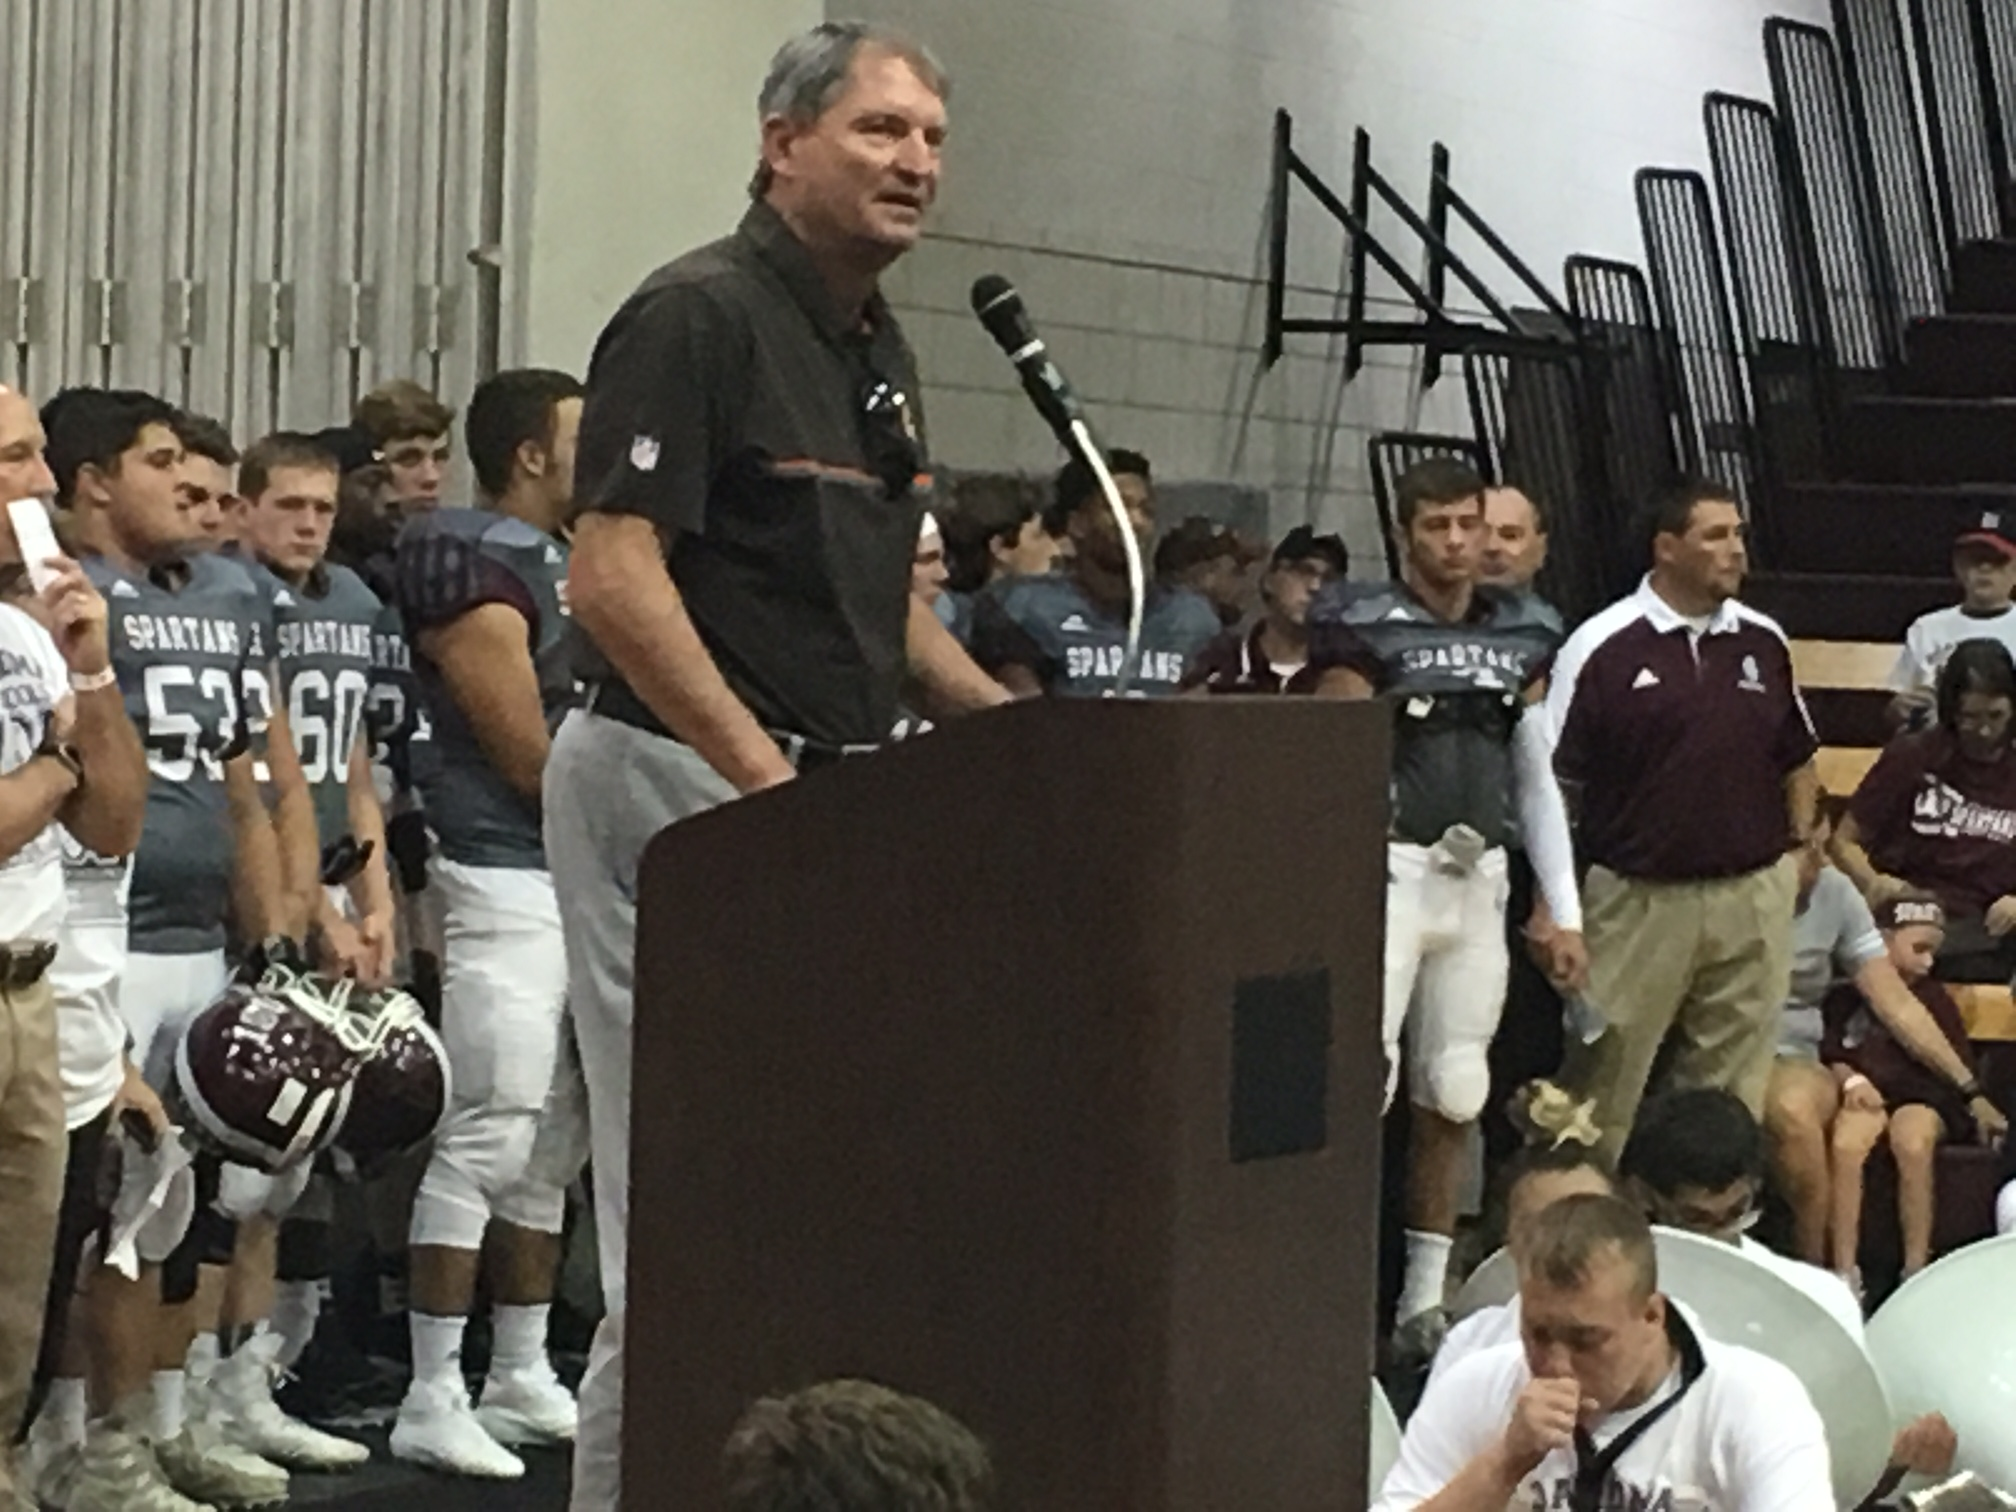 Bernie Kosar addressing pep rally crowd